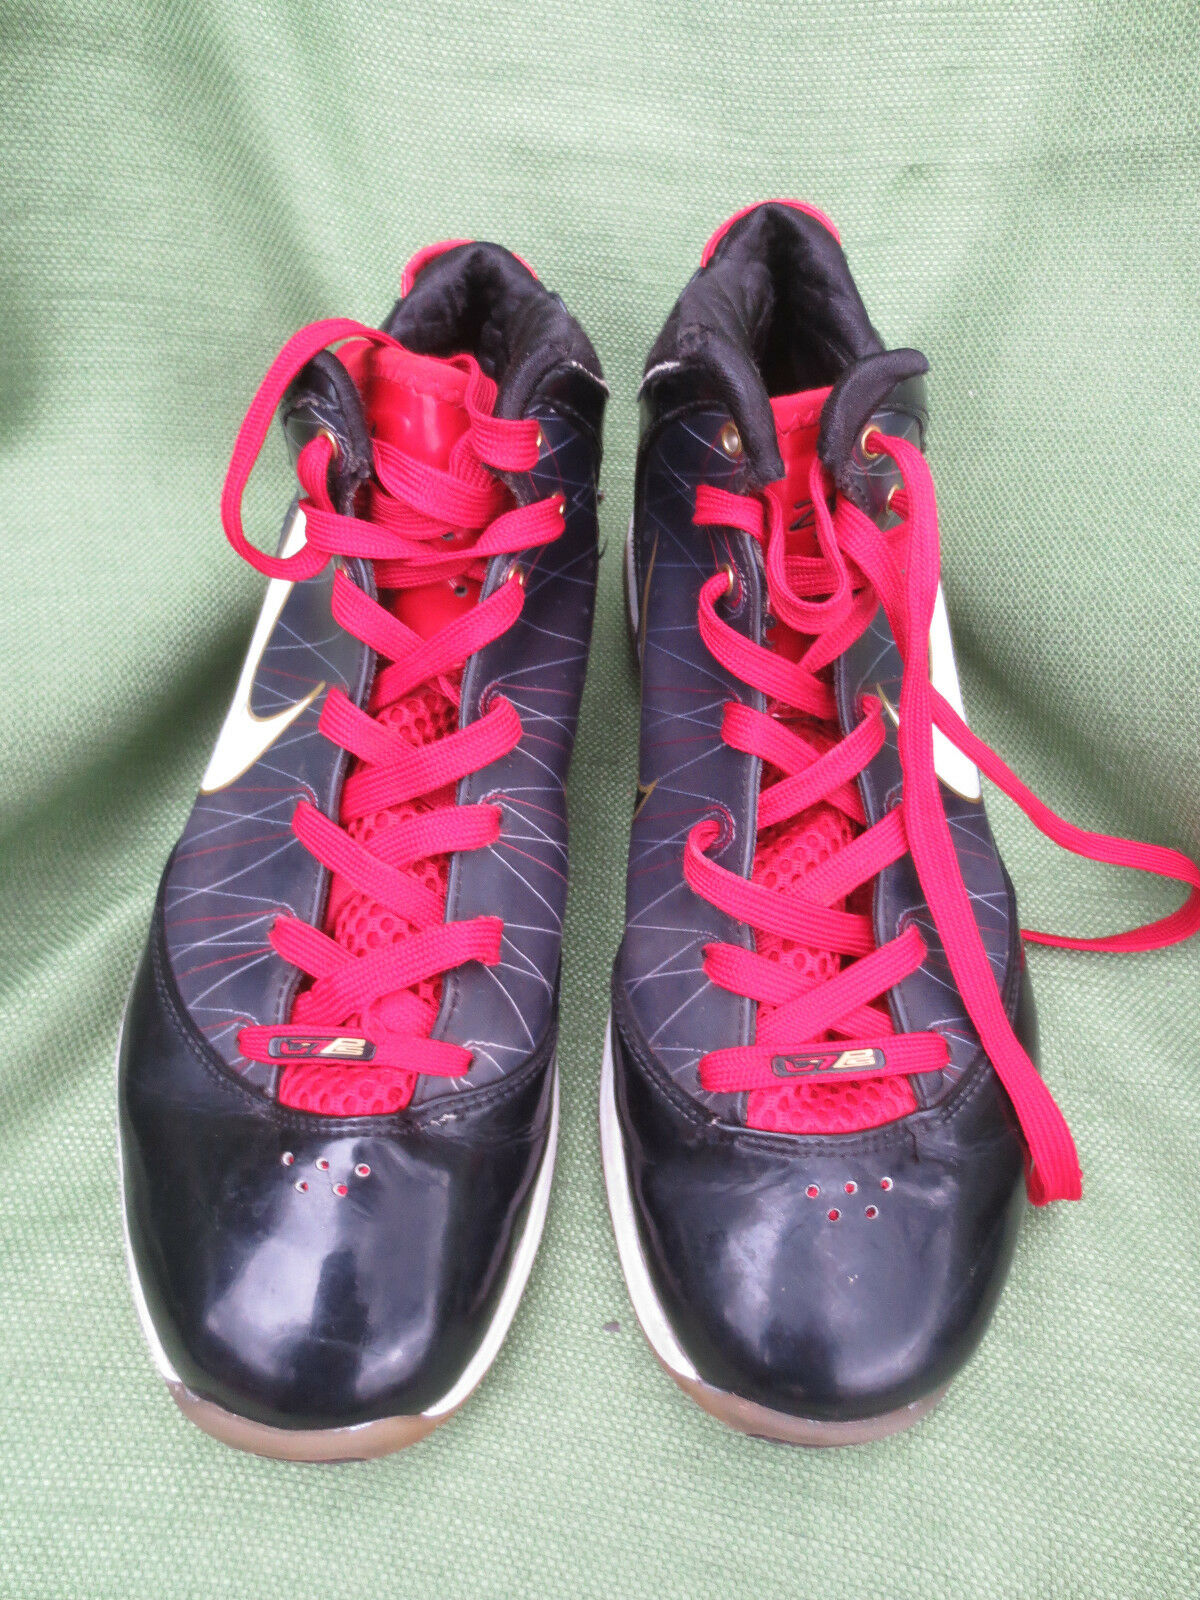 Wild casual shoes Nike Air Max Lebron VII 7 PS Post Season BLK WHT Red Gold 407639-002 Sz US 9.5